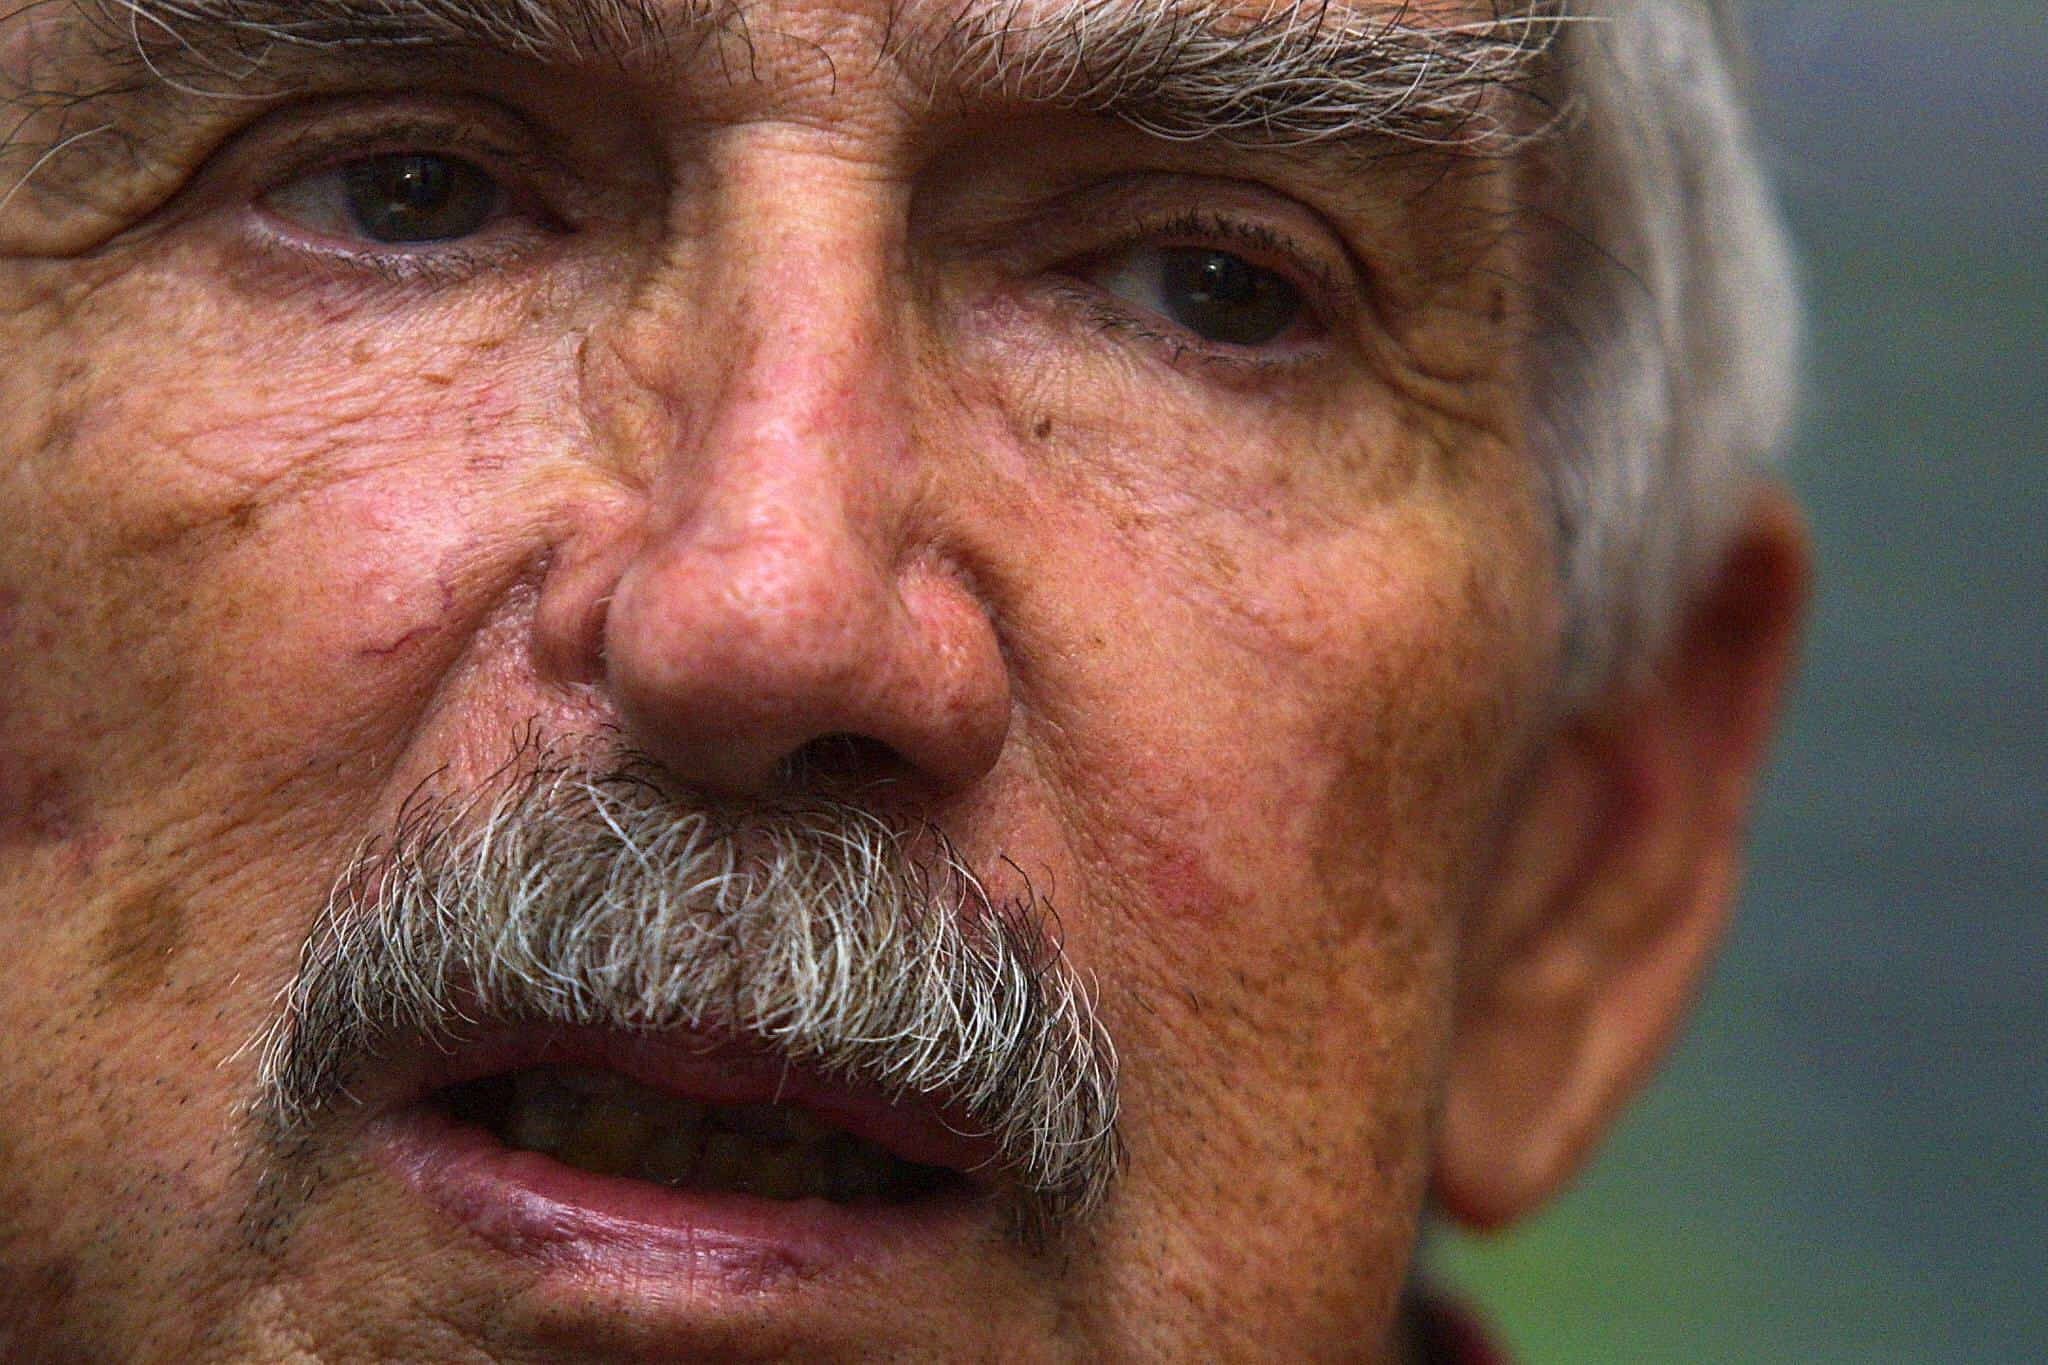 Luis Posada Carriles speaks to AFP on May 19, 2003.